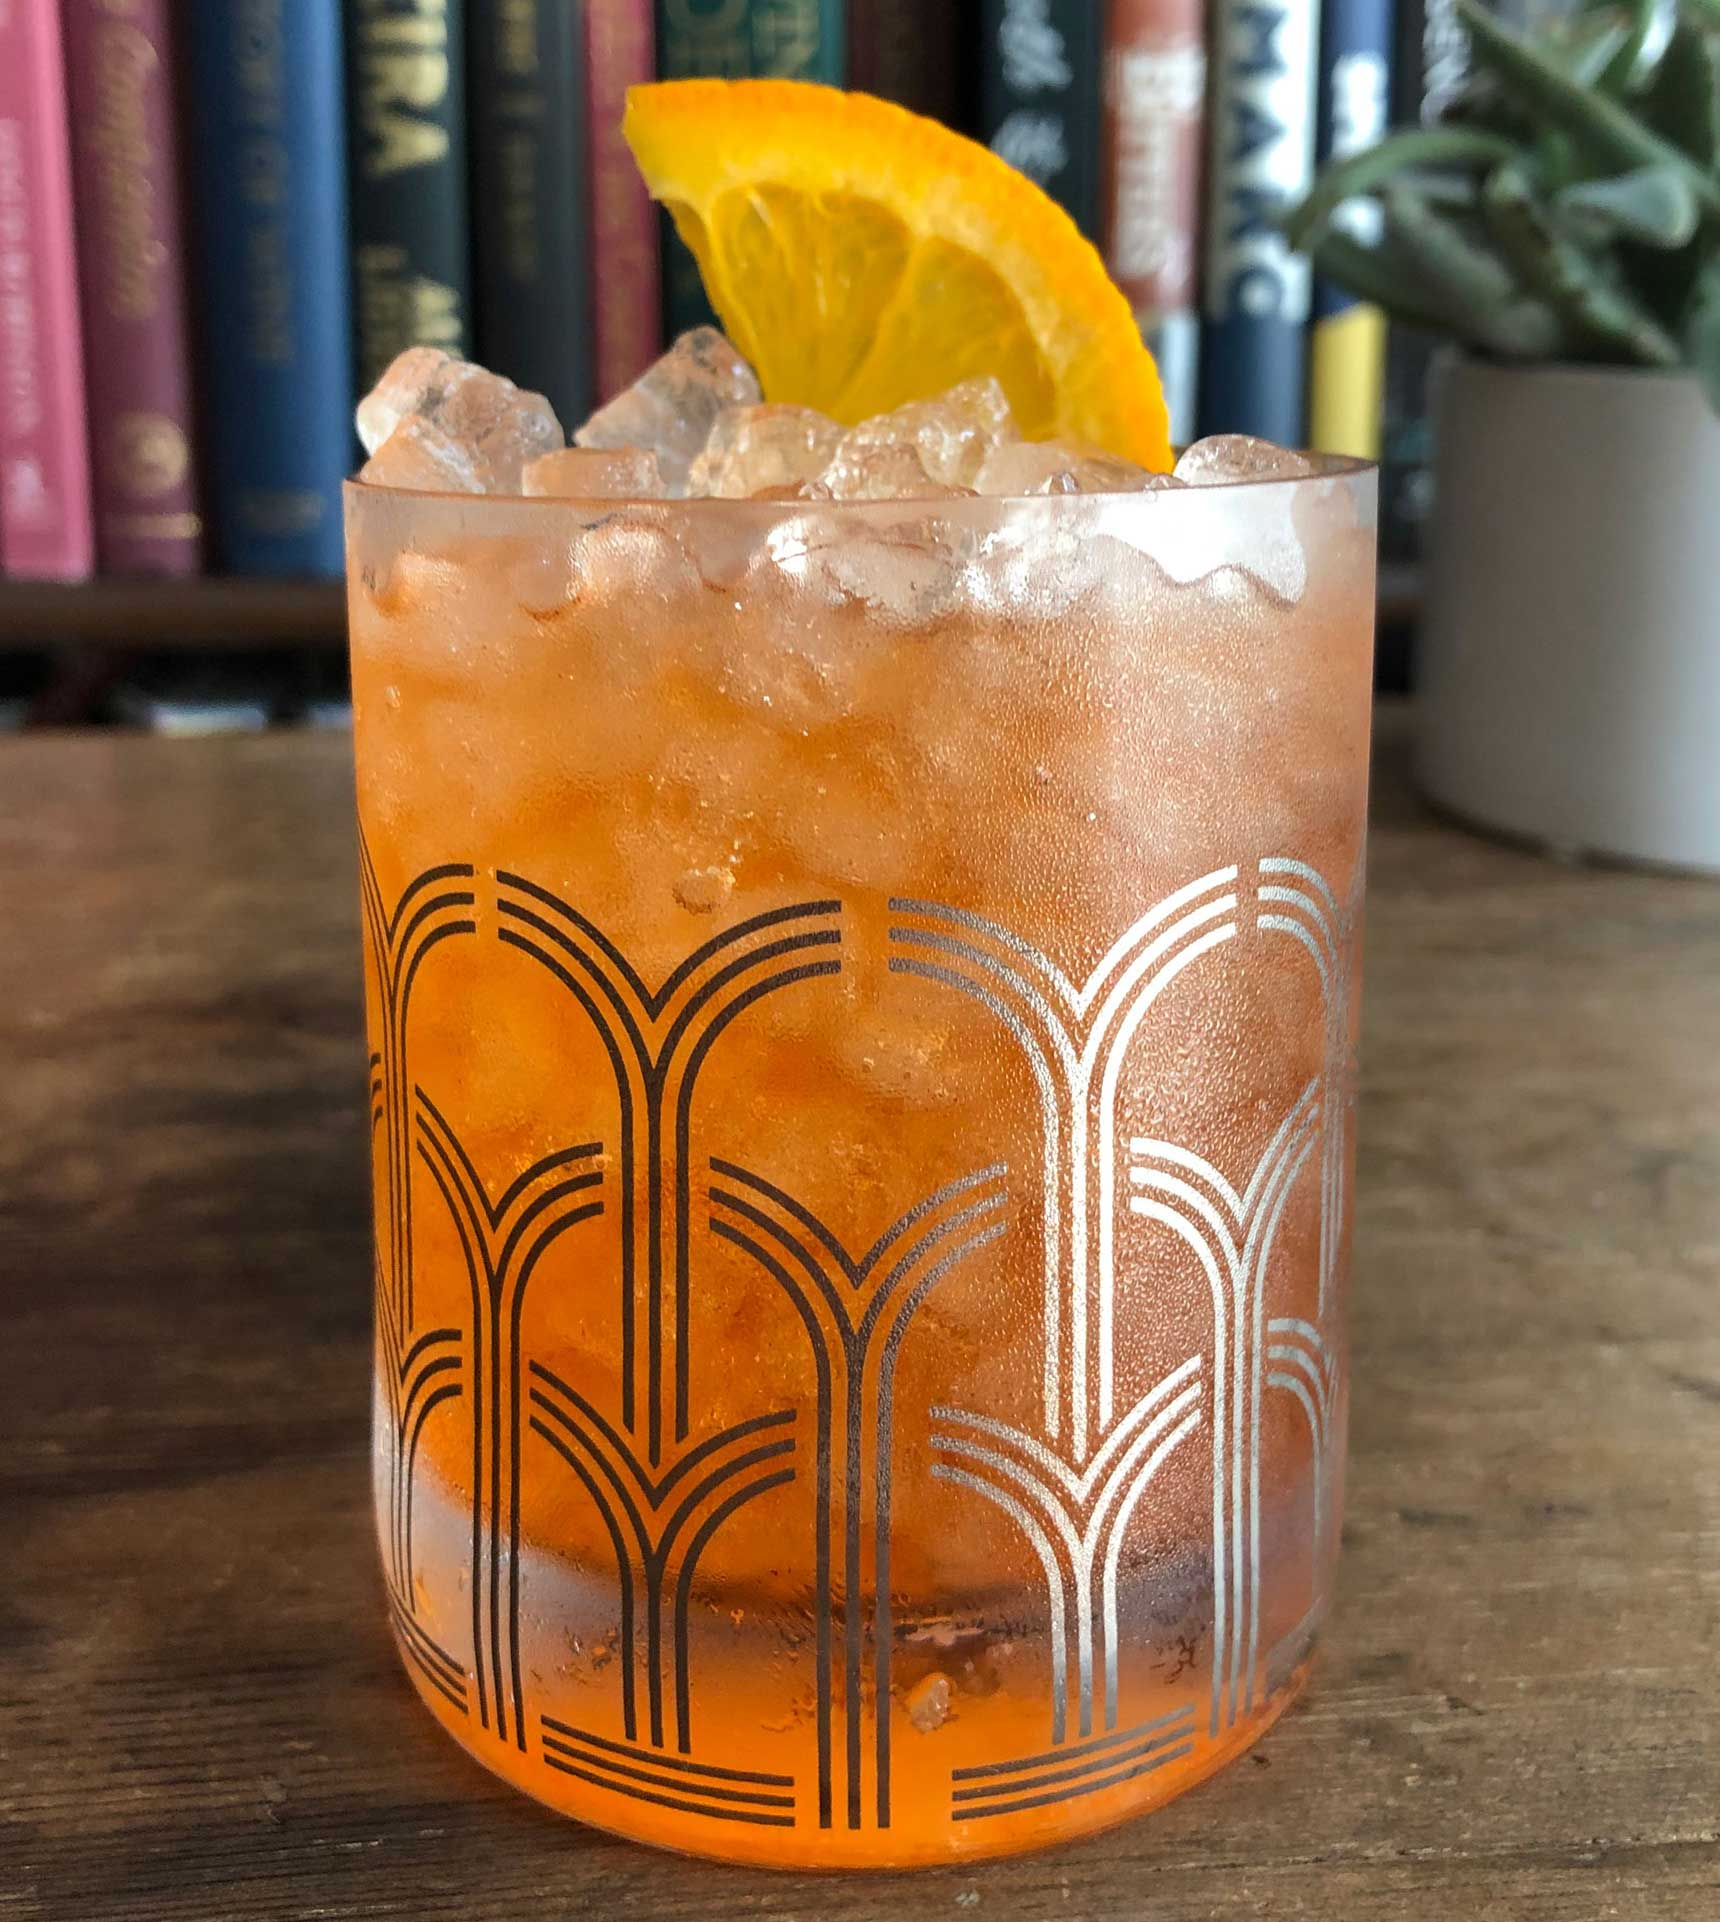 An example of the The Spritz, the mixed drink (cocktail) featuring soda water, Aperitivo Cappelletti, and sparkling wine; photo by Lee Edwards